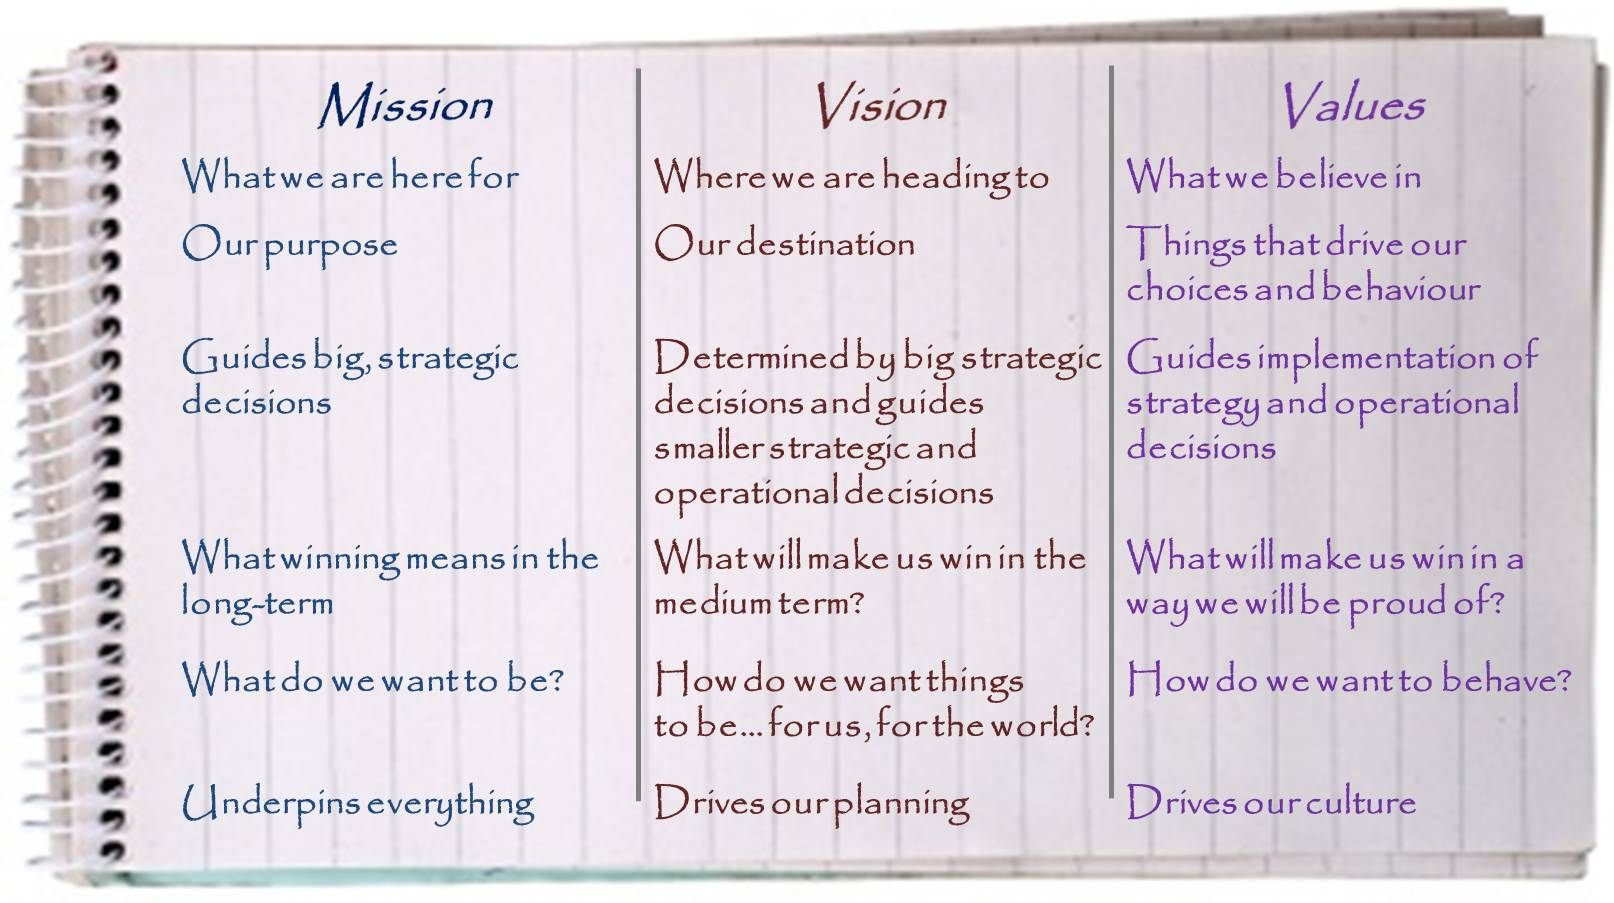 vision statement of nokia company Vision and mission statement of nokia company business vision and company mission statement while a business must continually adapt to its competitive environment, there are certain core ideals that remain relatively steady and provide guidance in the process of strategic decision-making.